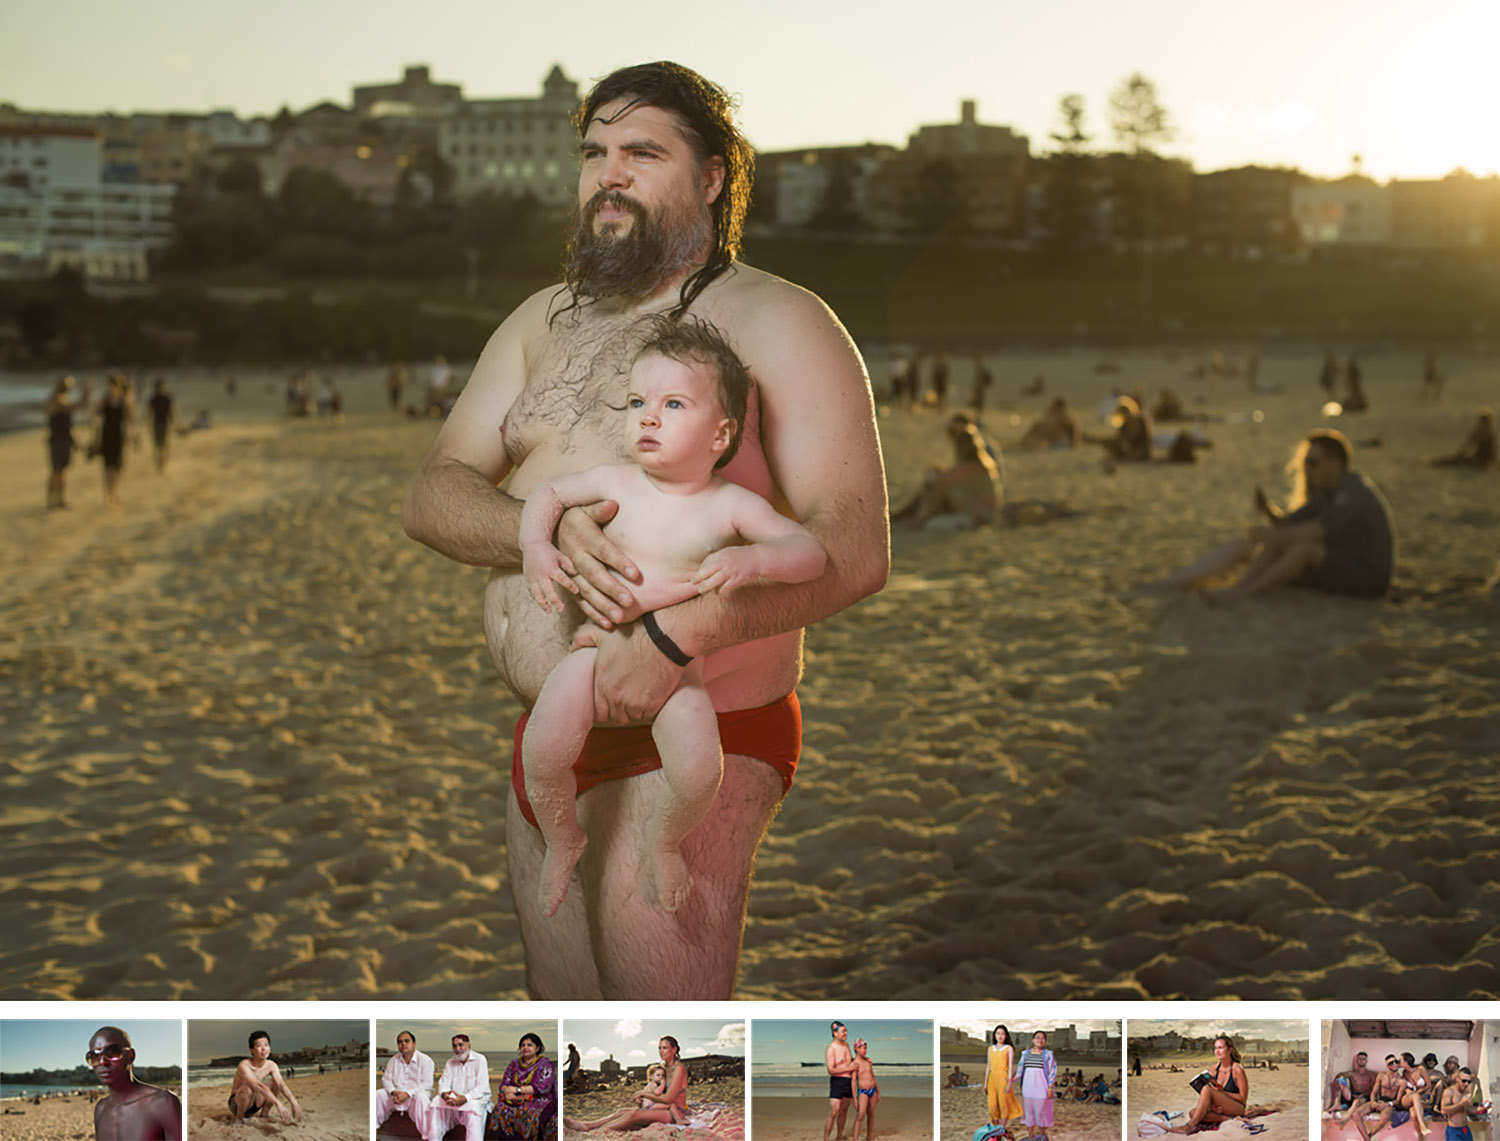 """Laid bare - ExhibitionA portrait series depicting todays Australia.In shooting this series I deliberately moved away from the media/commercial driven stereotype of the Australian beach goer as bronzed, muscular, Anglo-Saxon as typified by Max Dupain's 1937 photo """" The Sunbaker"""